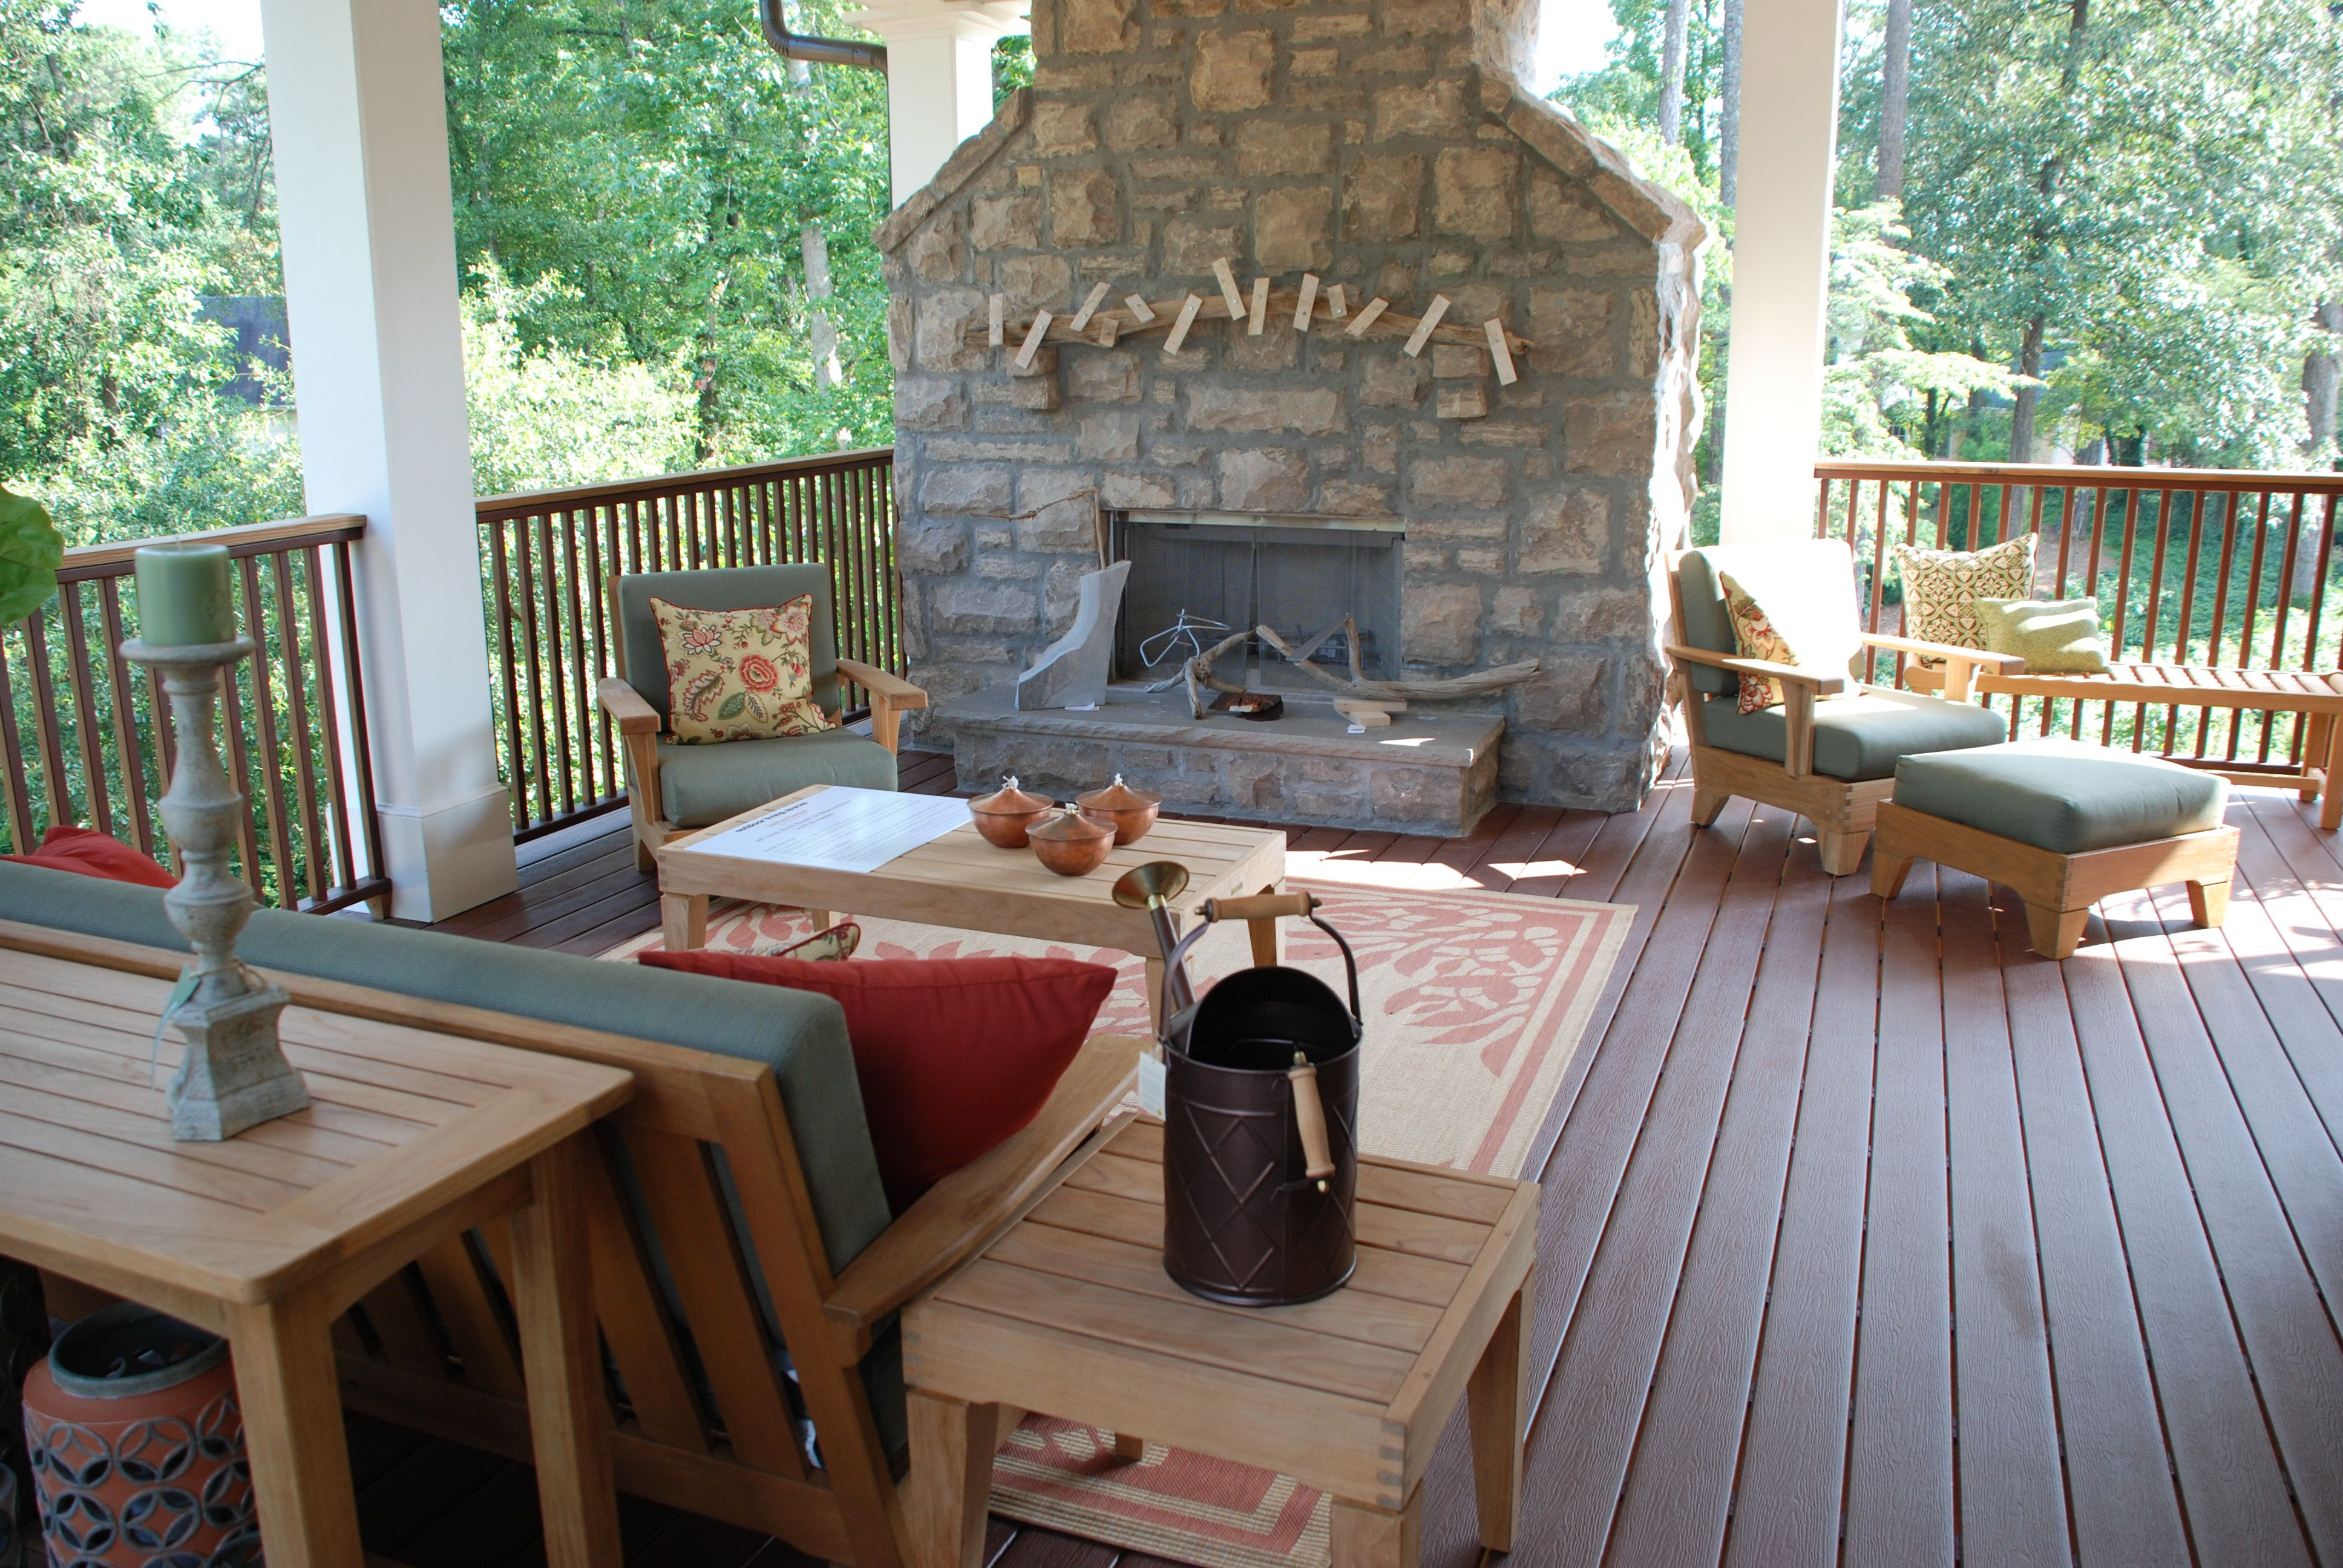 ad0df1759d2395ff50bbb3ceb73651ad Top Result 53 Inspirational Outside Stone Fireplace